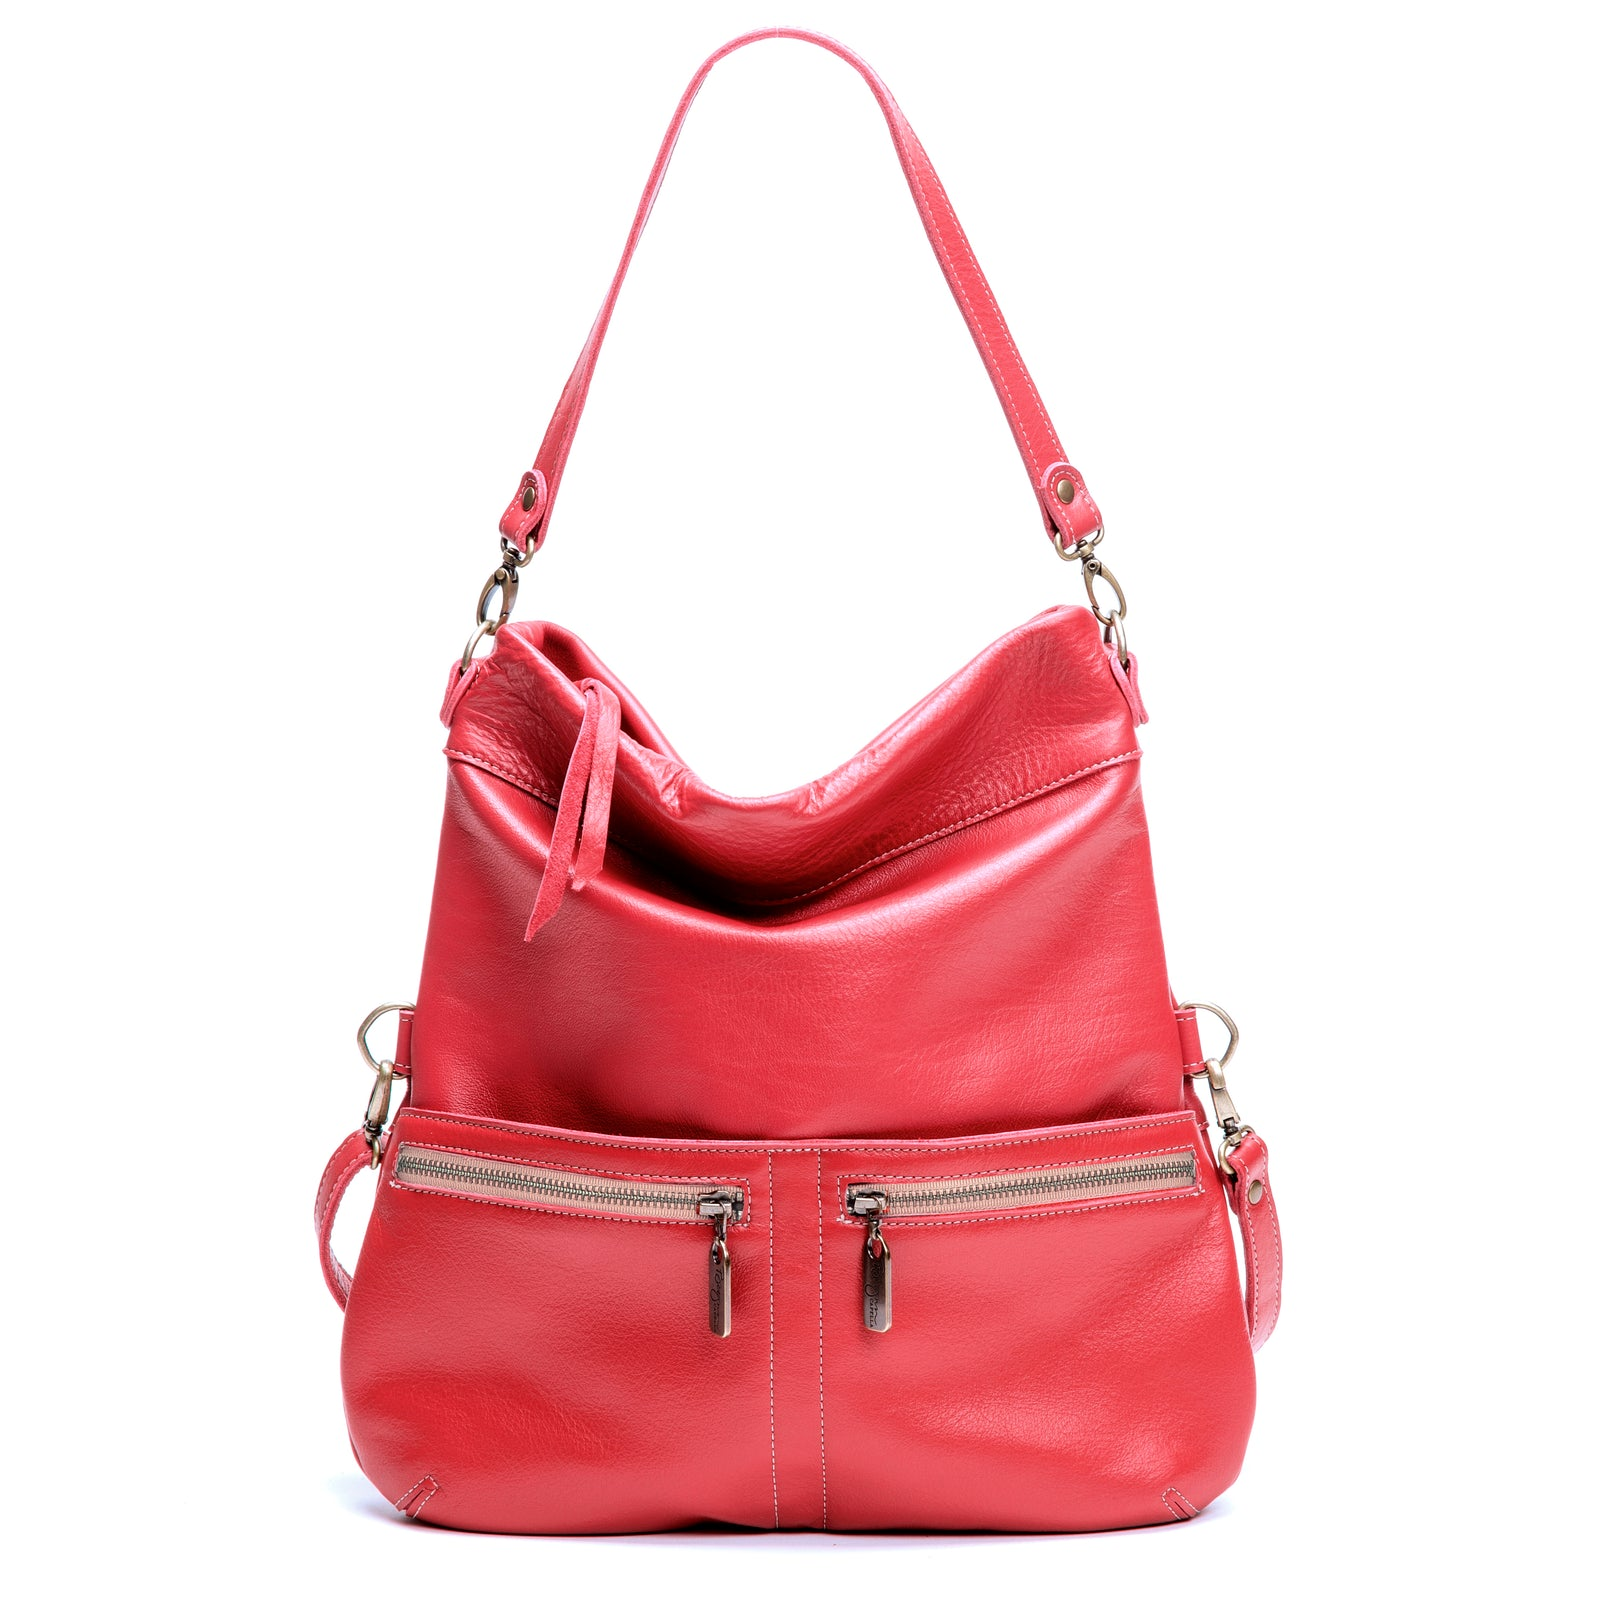 Mini-Lauren Crossbody - Cambridge - Brynn Capella, Medium Crossbody